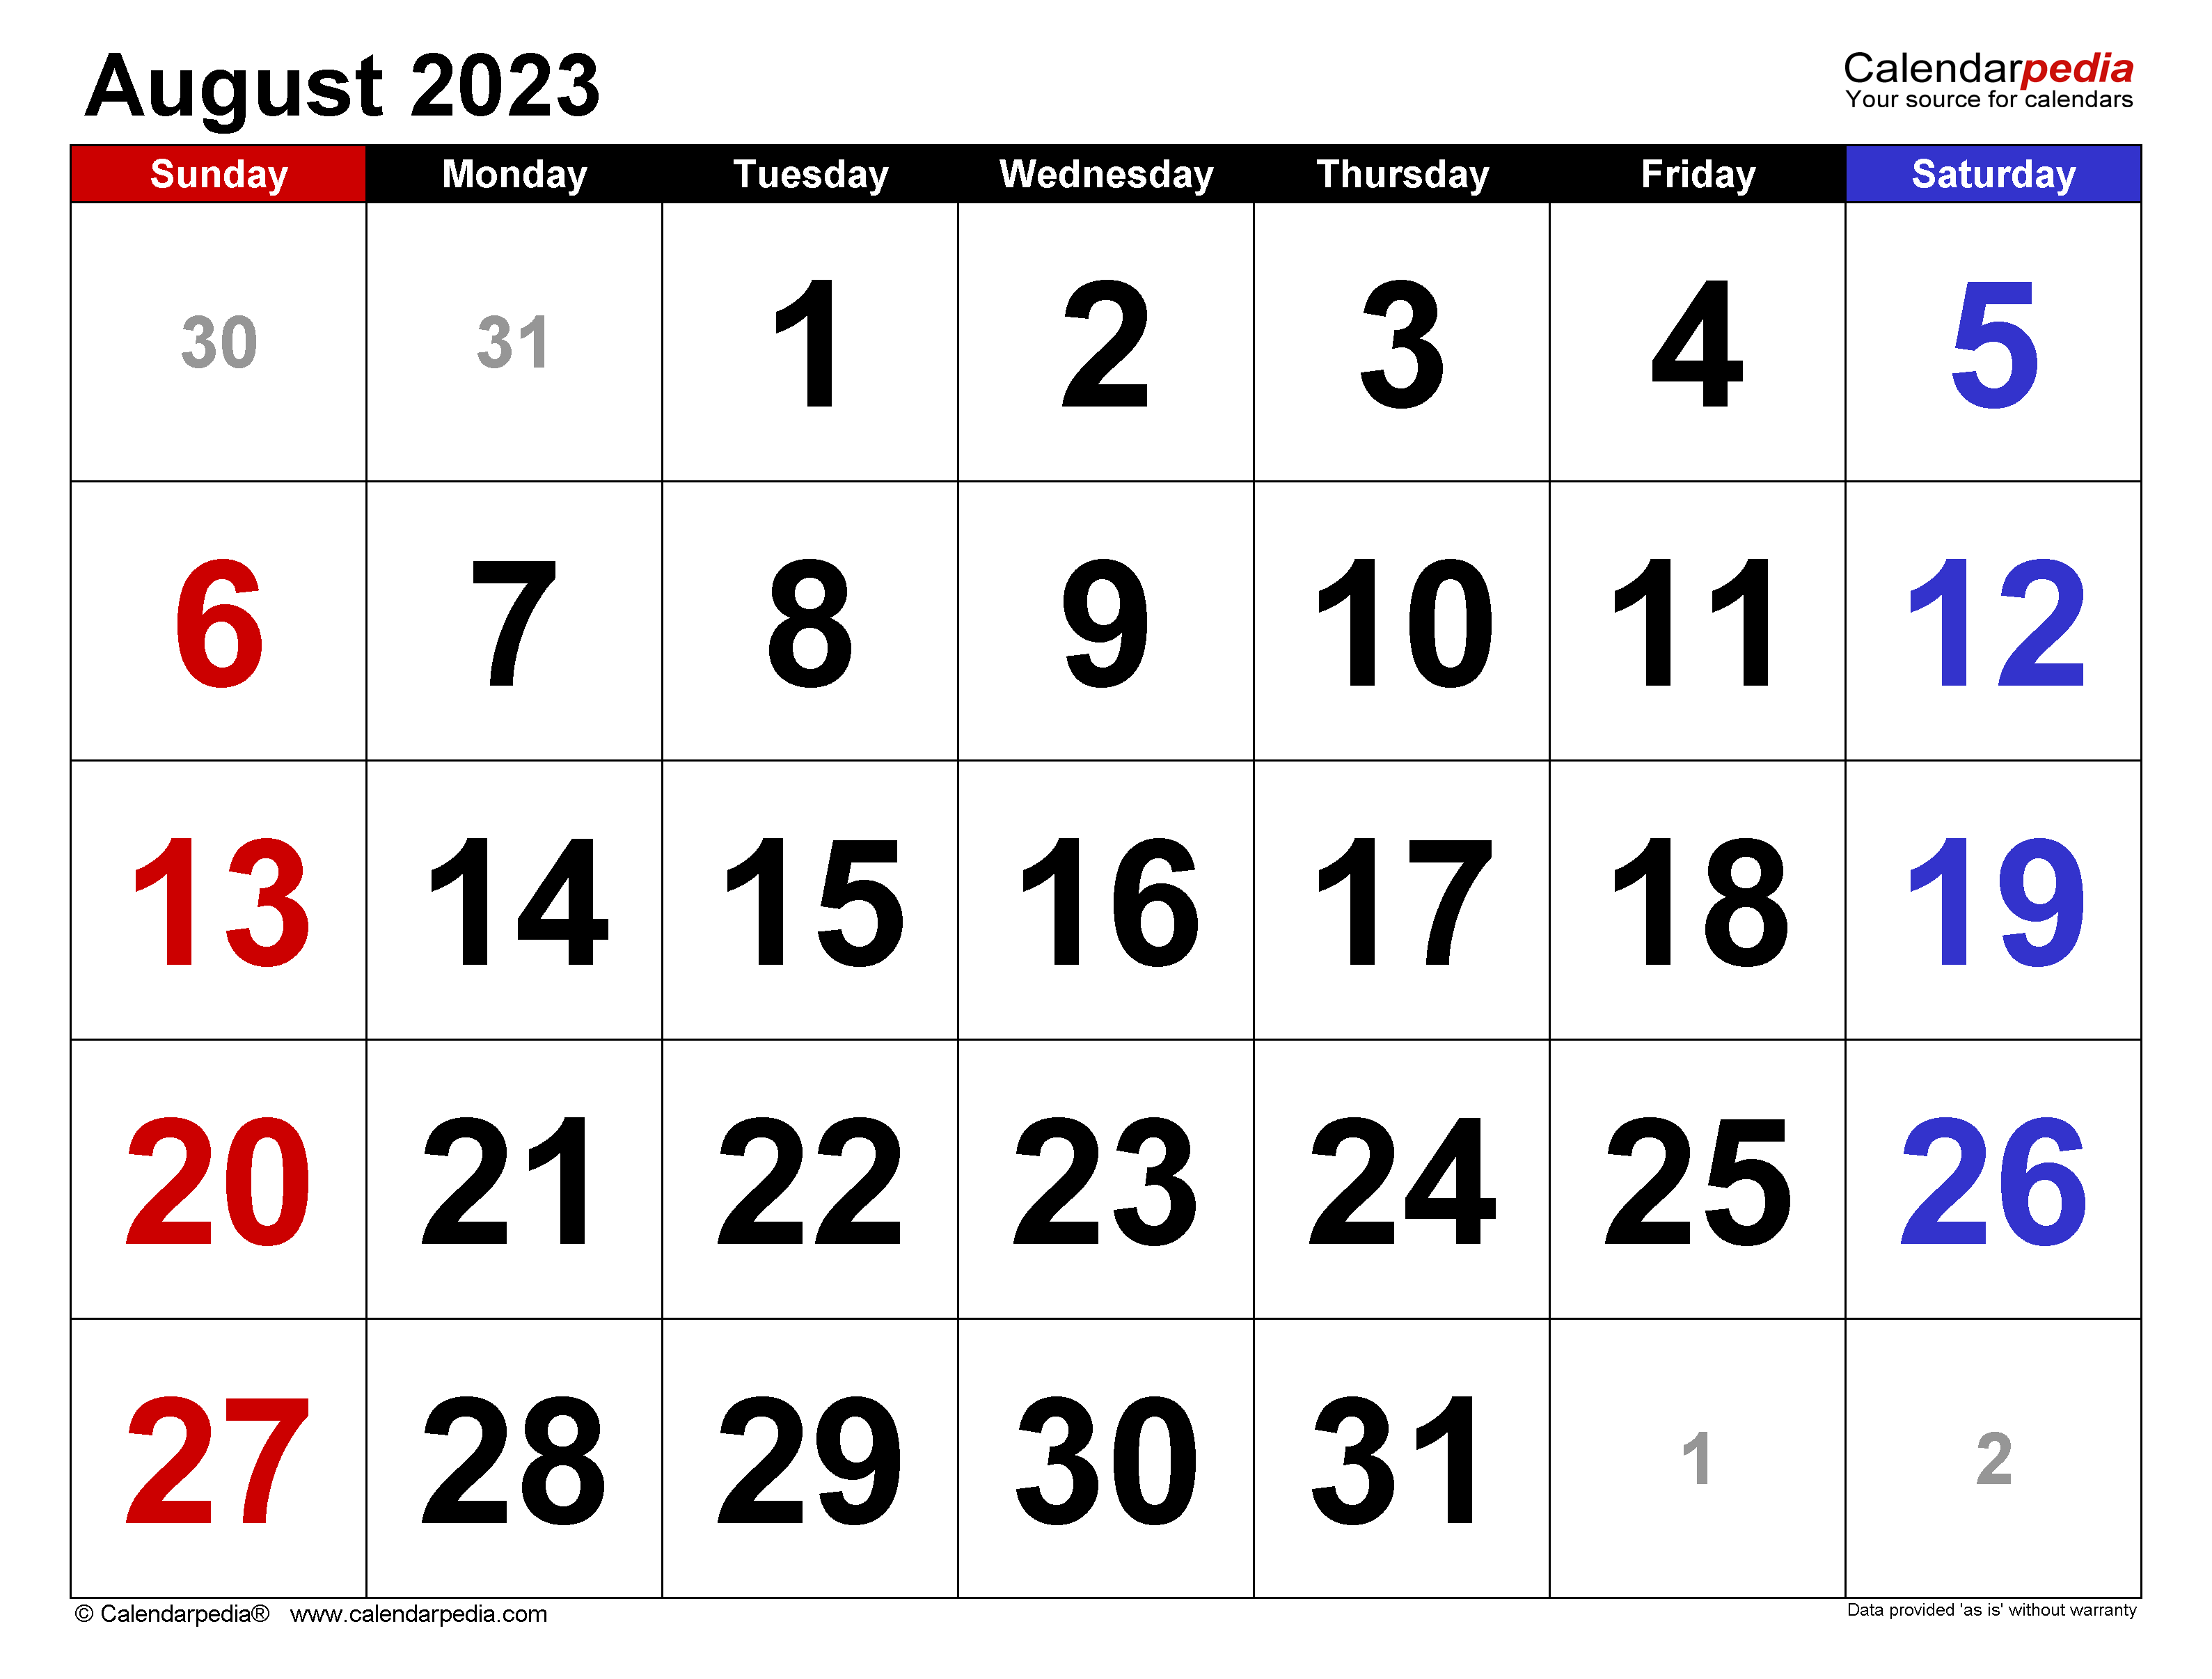 August 2023 Calendar Templates For Word Excel And Pdf